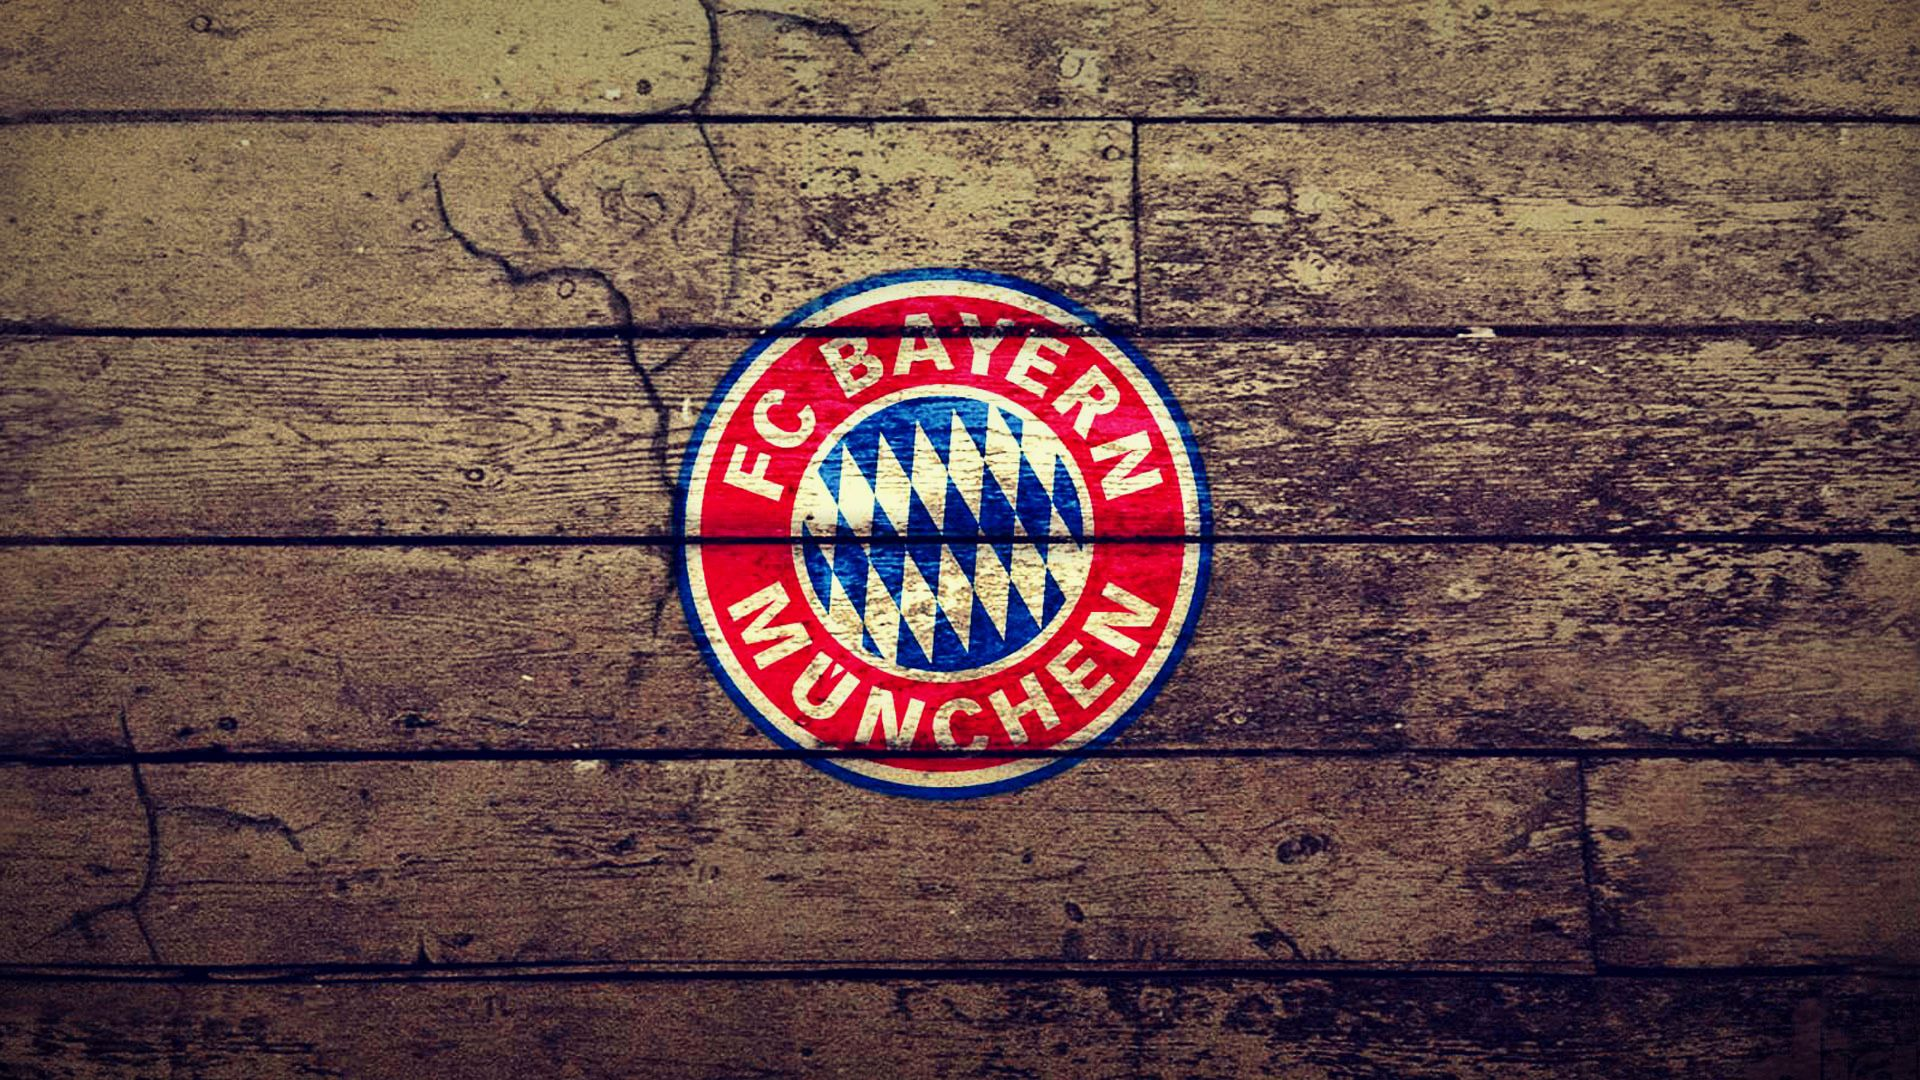 Free Download Bayern Munich Wallpapers Hd Full Hd Pictures 1920x1080 For Your Desktop Mobile Tablet Explore 76 Bayern Munich Wallpapers Bayern Munich Logo Wallpaper Bayern Munich Iphone Wallpaper Bayern